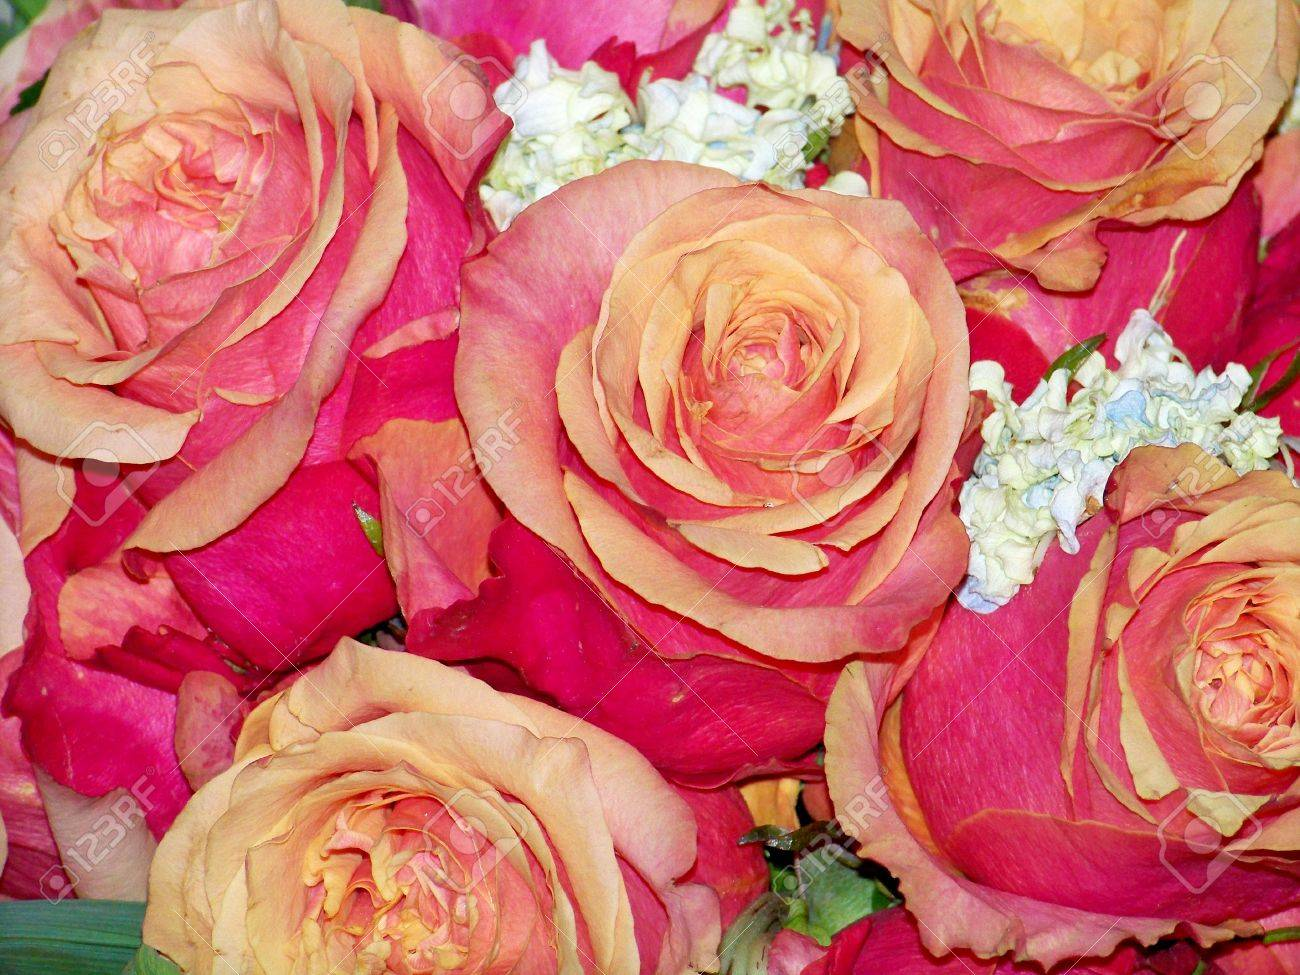 Pink and orange roses romantic wedding or Valentines bouquet Stock Photo - 11734826